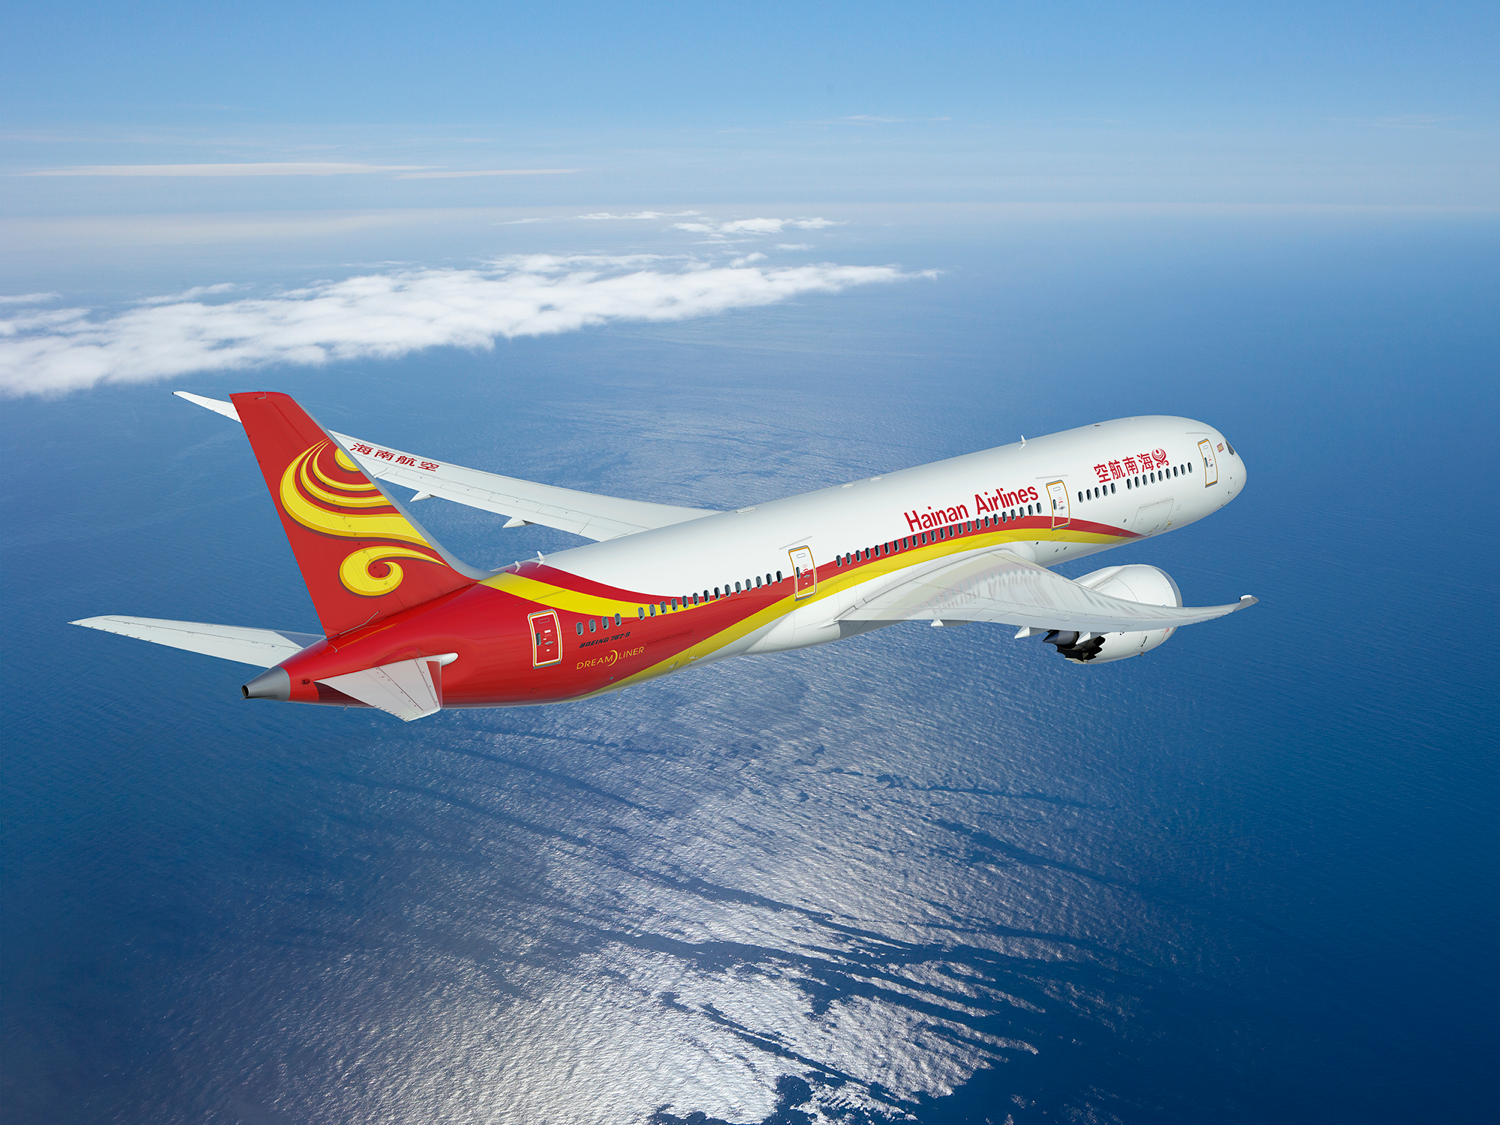 Hainan Airlines Dreamliner